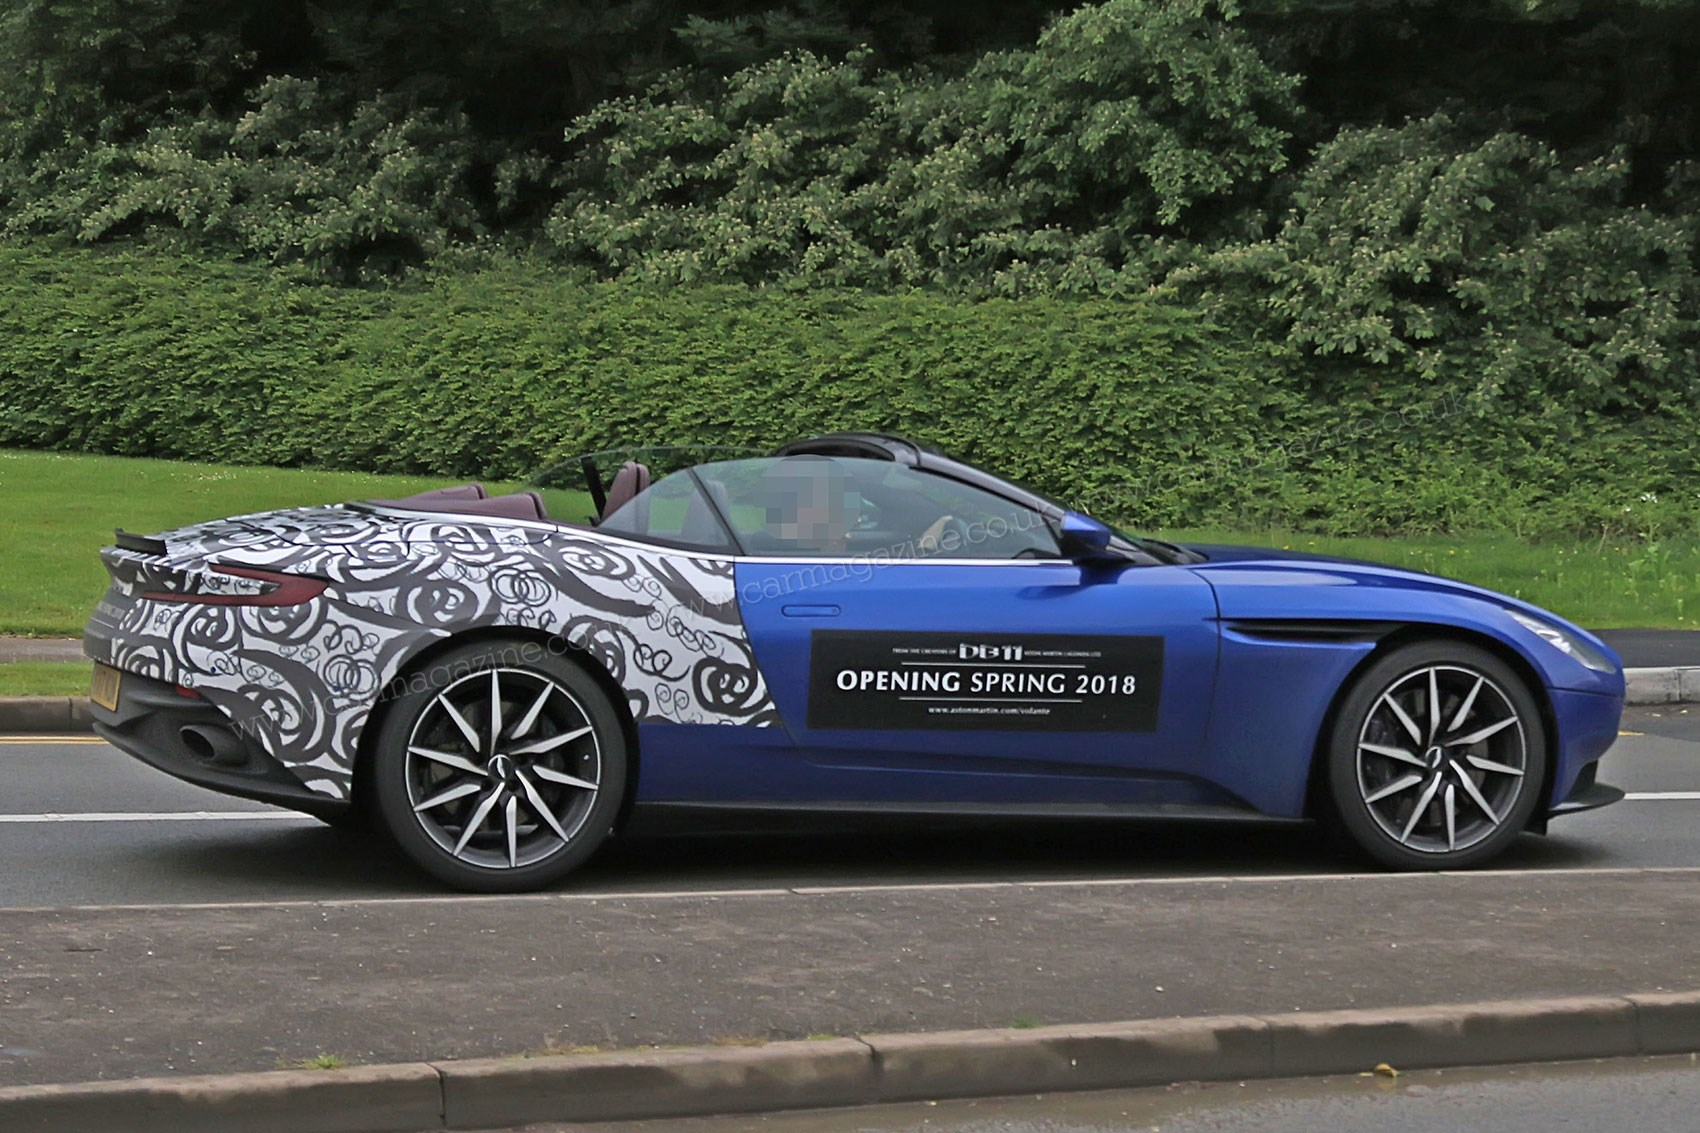 When prototypes become mobile billboards: Aston Martin ...